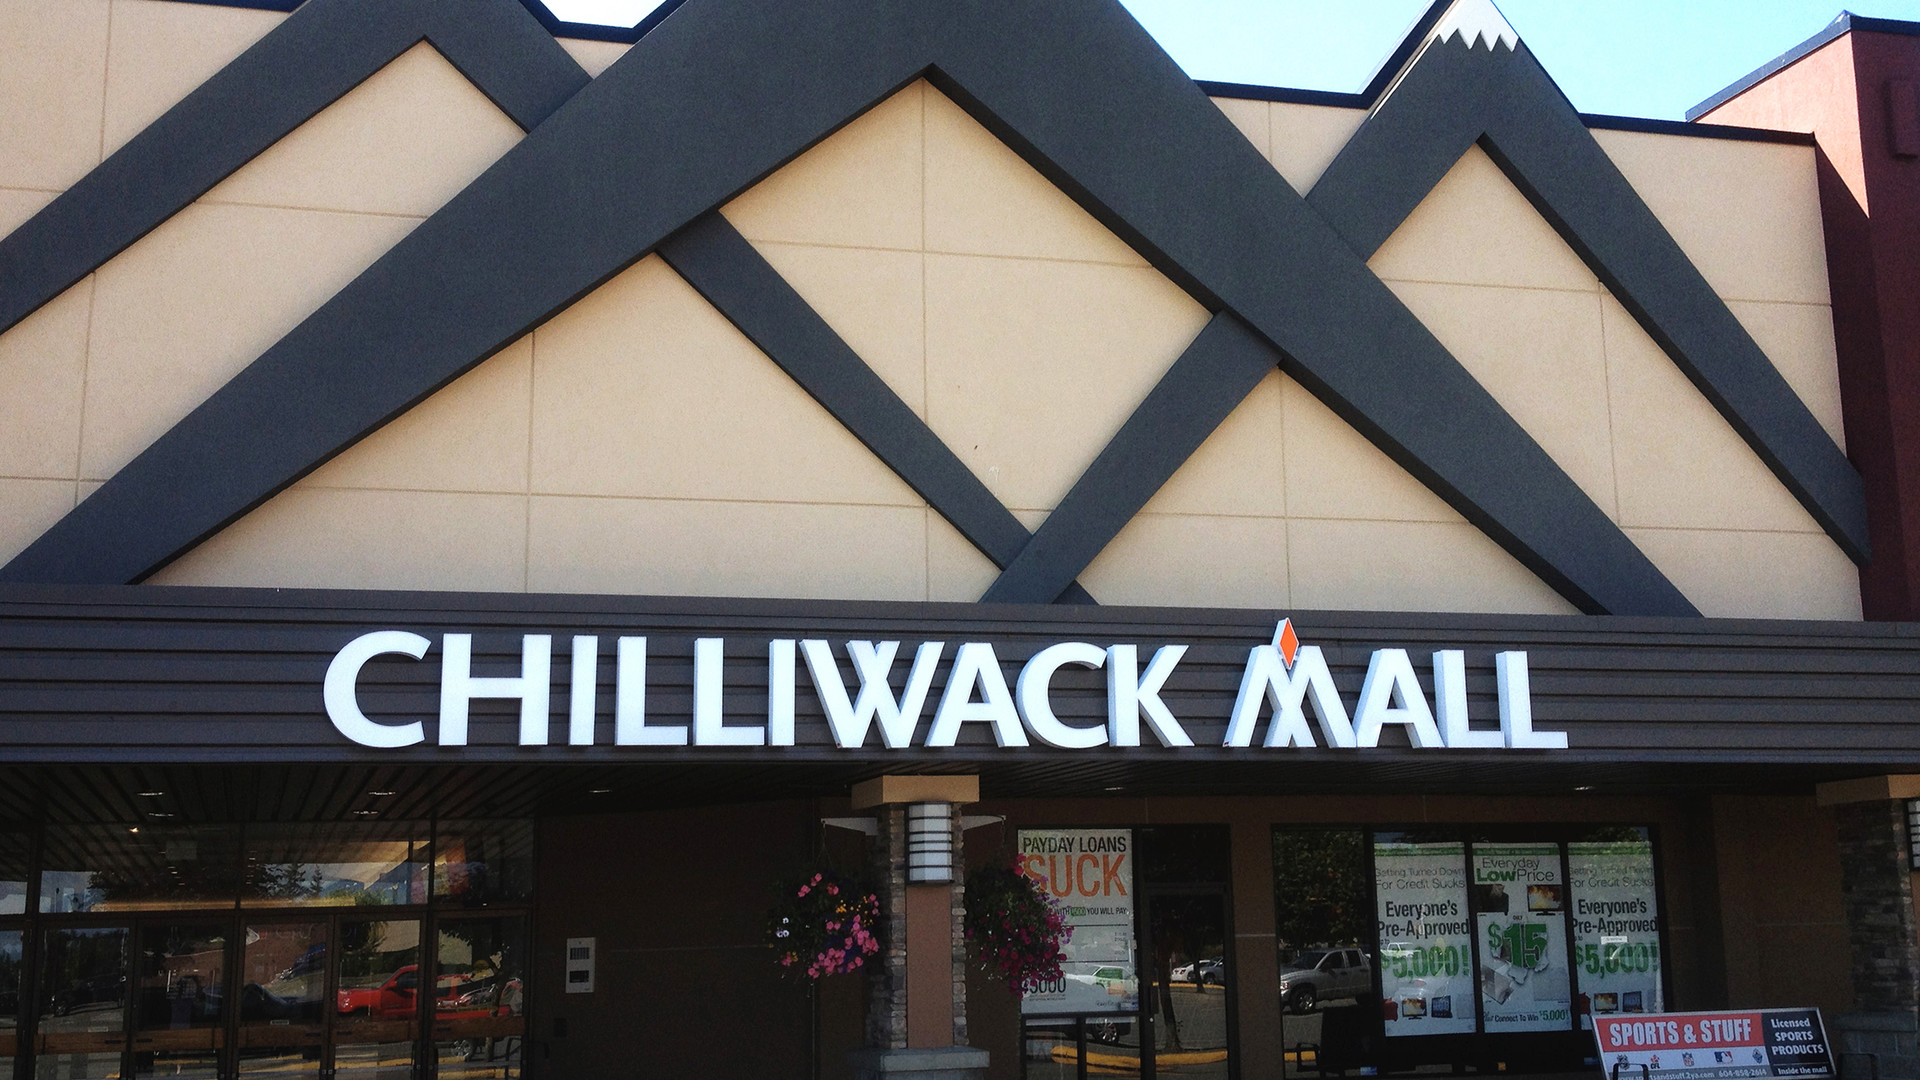 Chilliwack Mall Front Facade